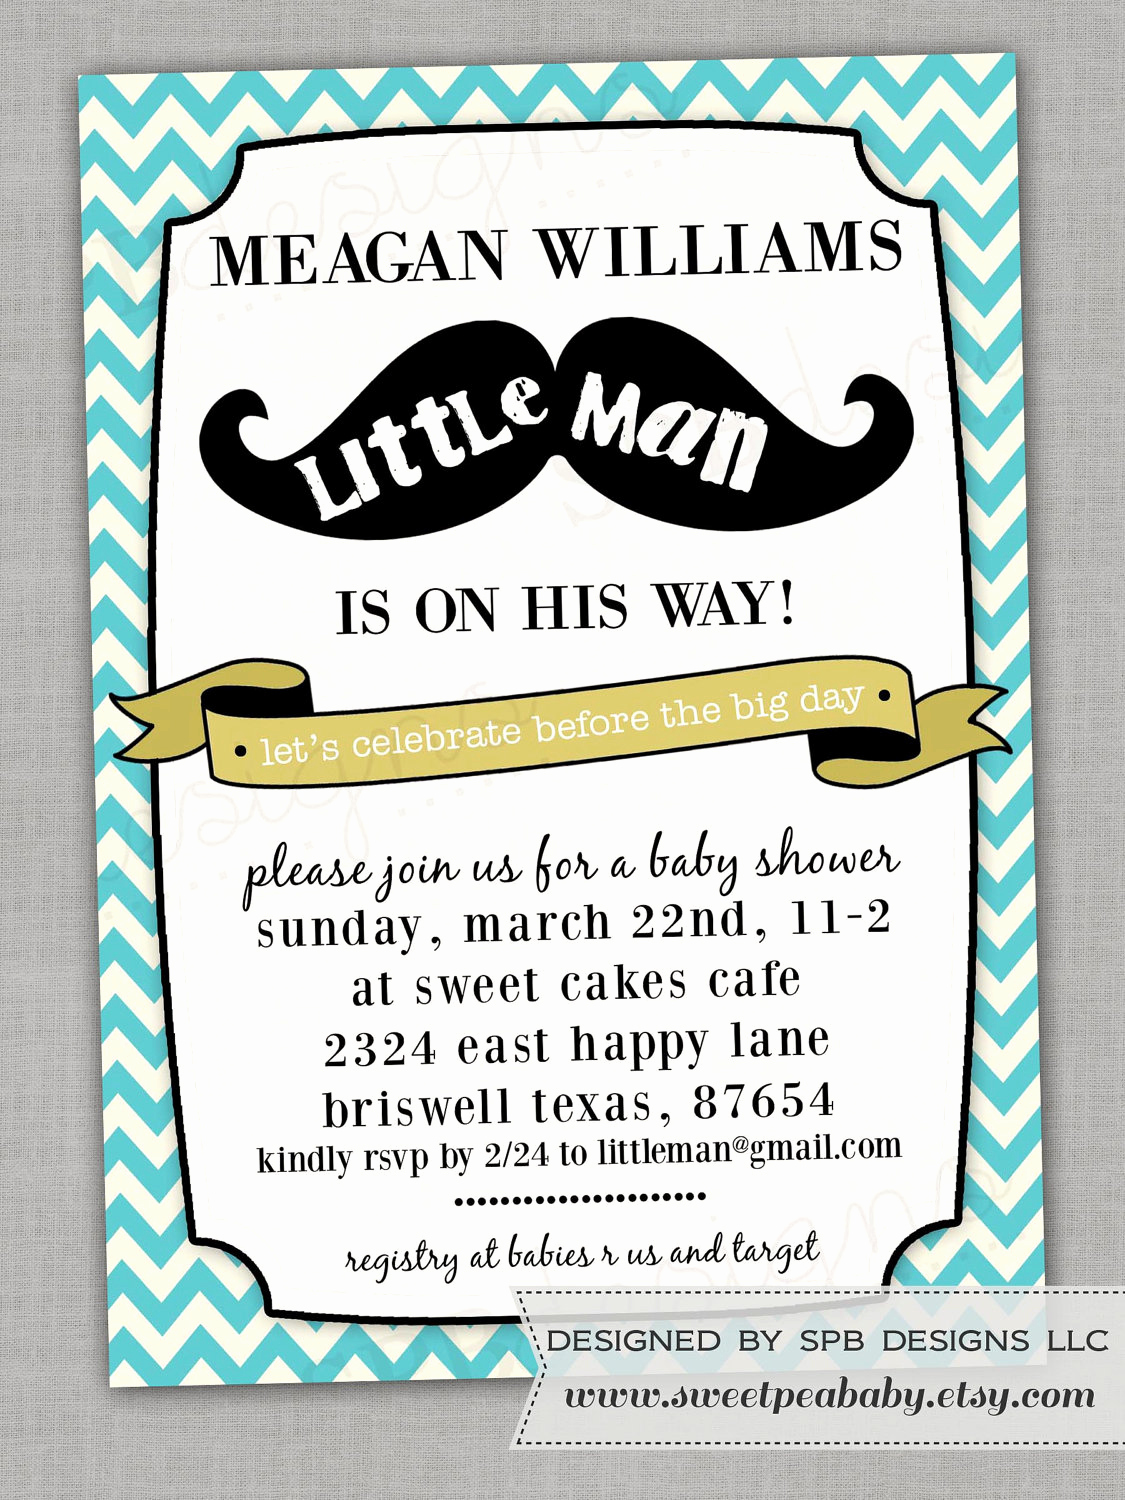 Mustache Baby Shower Invitation Elegant Mustache Baby Shower Invitation Little Man